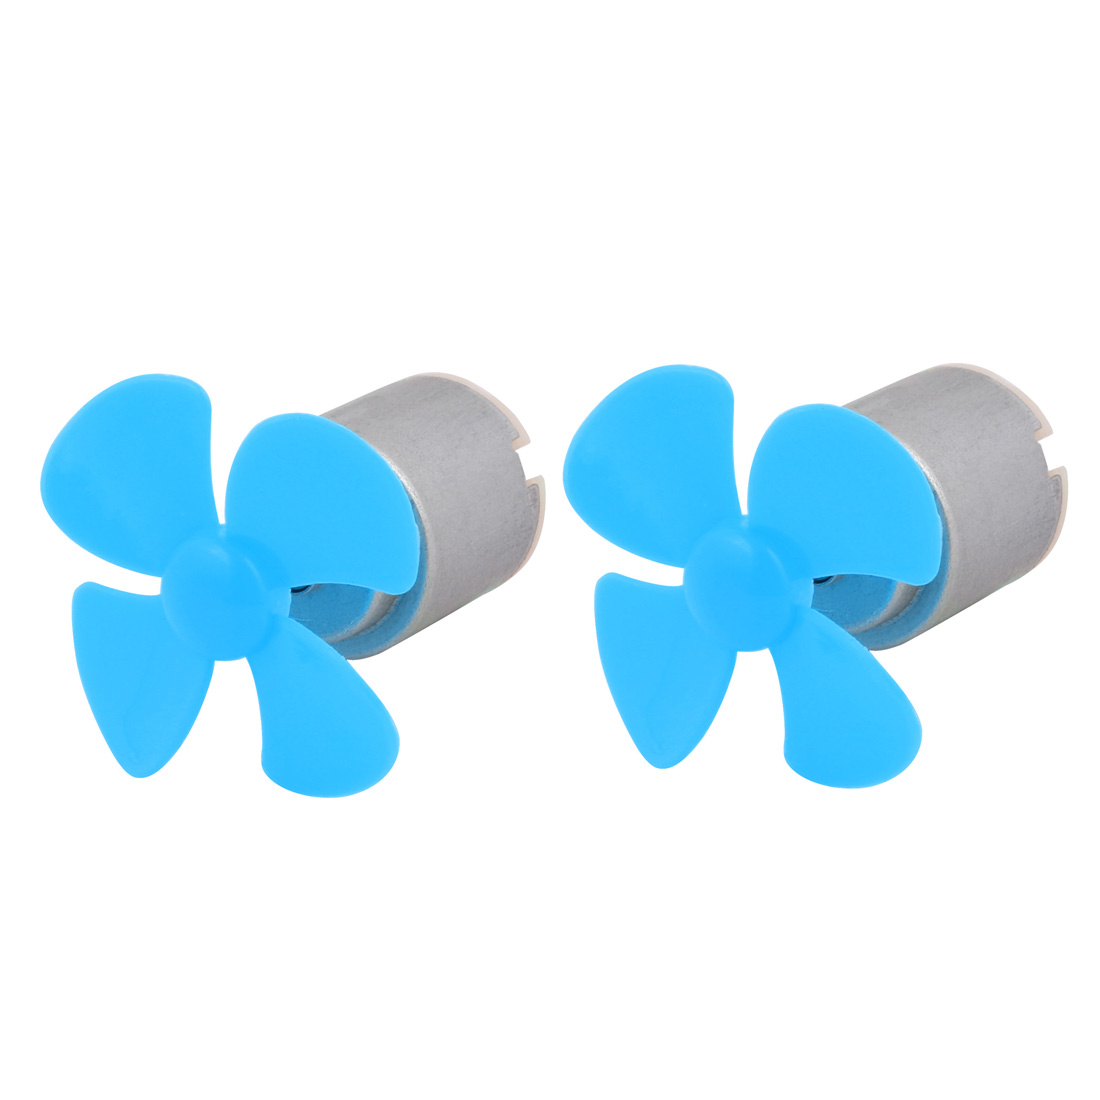 2Pcs DC 3V 0.05A 12500RPM Large Torque Motor 4-Vane 40mm Dia Propeller Blue for RC Model